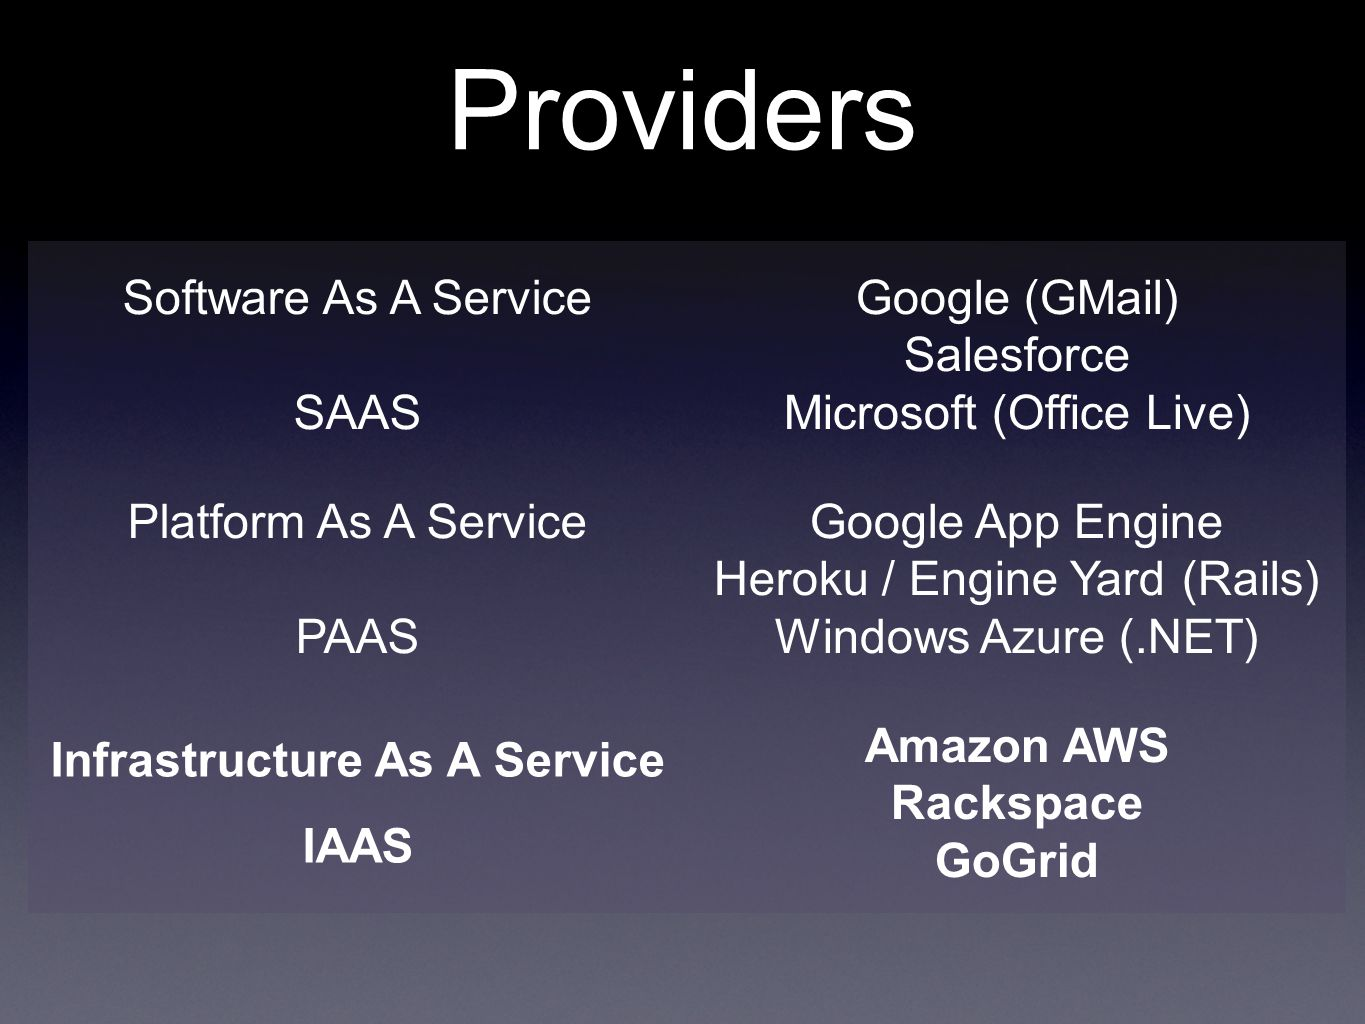 Providers Software As A Service SAAS Google (GMail) Salesforce Microsoft (Office Live) Platform As A Service PAAS Google App Engine Heroku / Engine Yard (Rails) Windows Azure (.NET) Infrastructure As A Service IAAS Amazon AWS Rackspace GoGrid